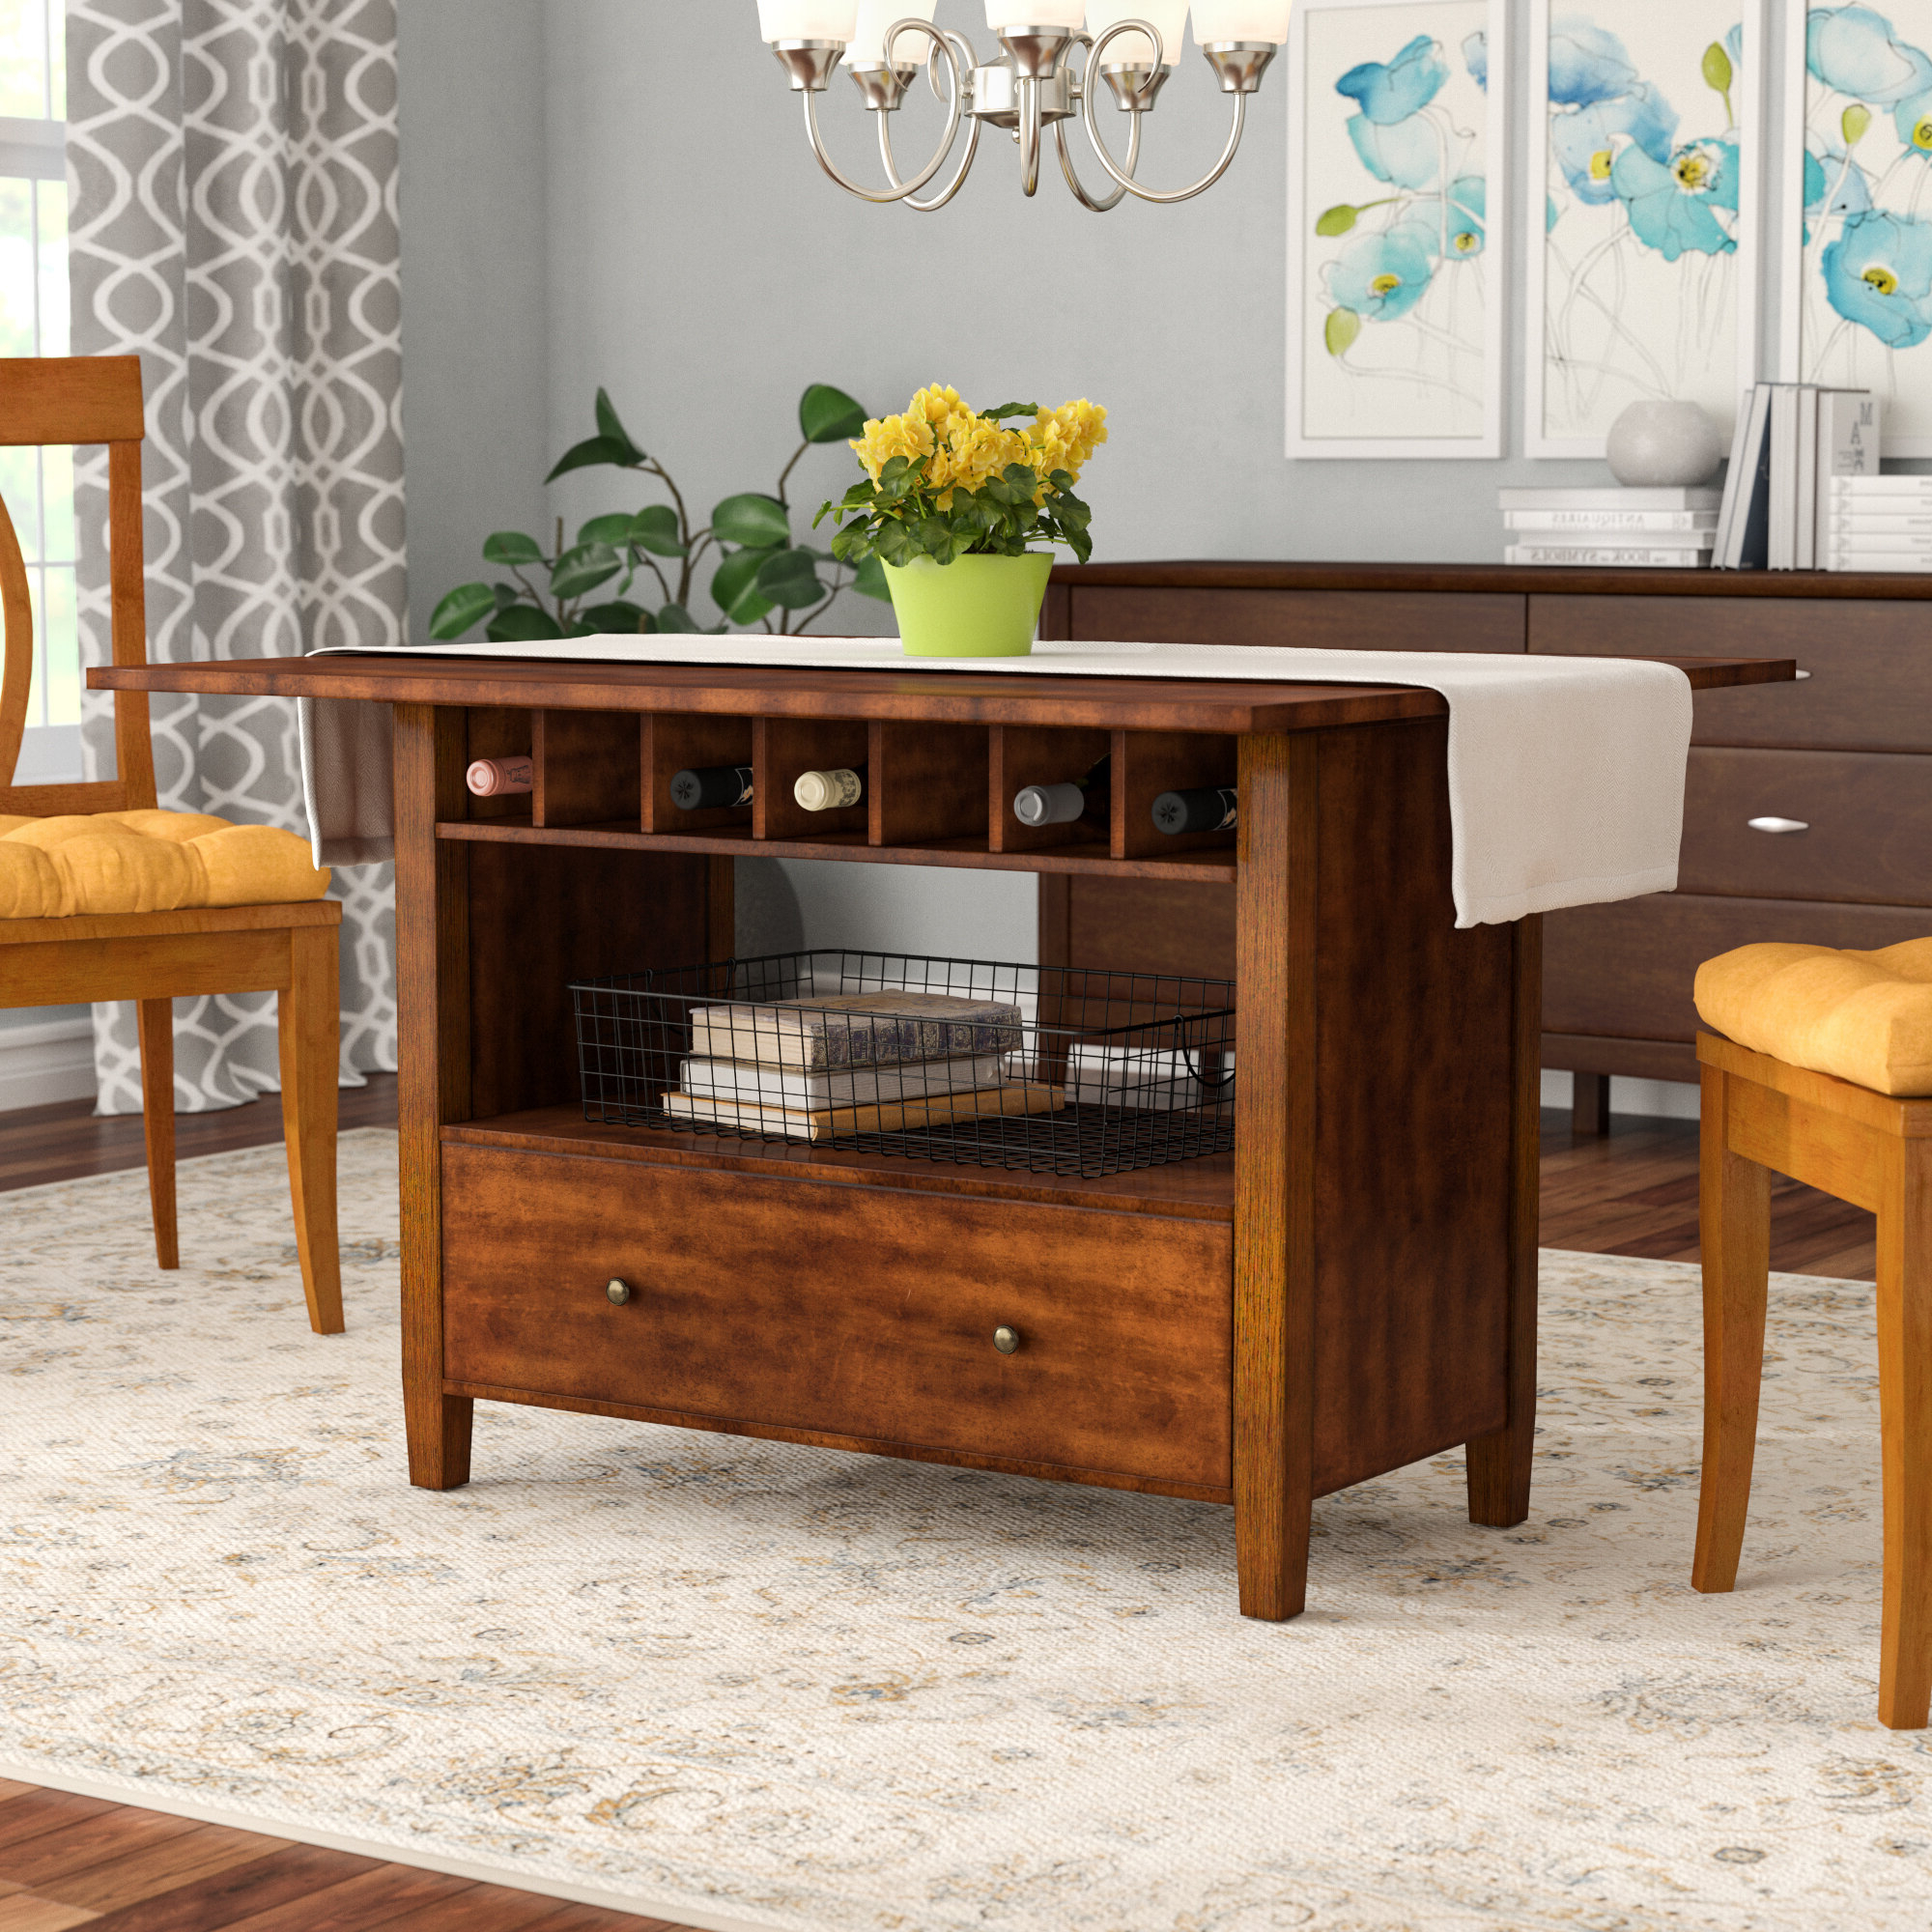 Wayfair In Most Popular Transitional 4 Seating Drop Leaf Casual Dining Tables (View 15 of 25)